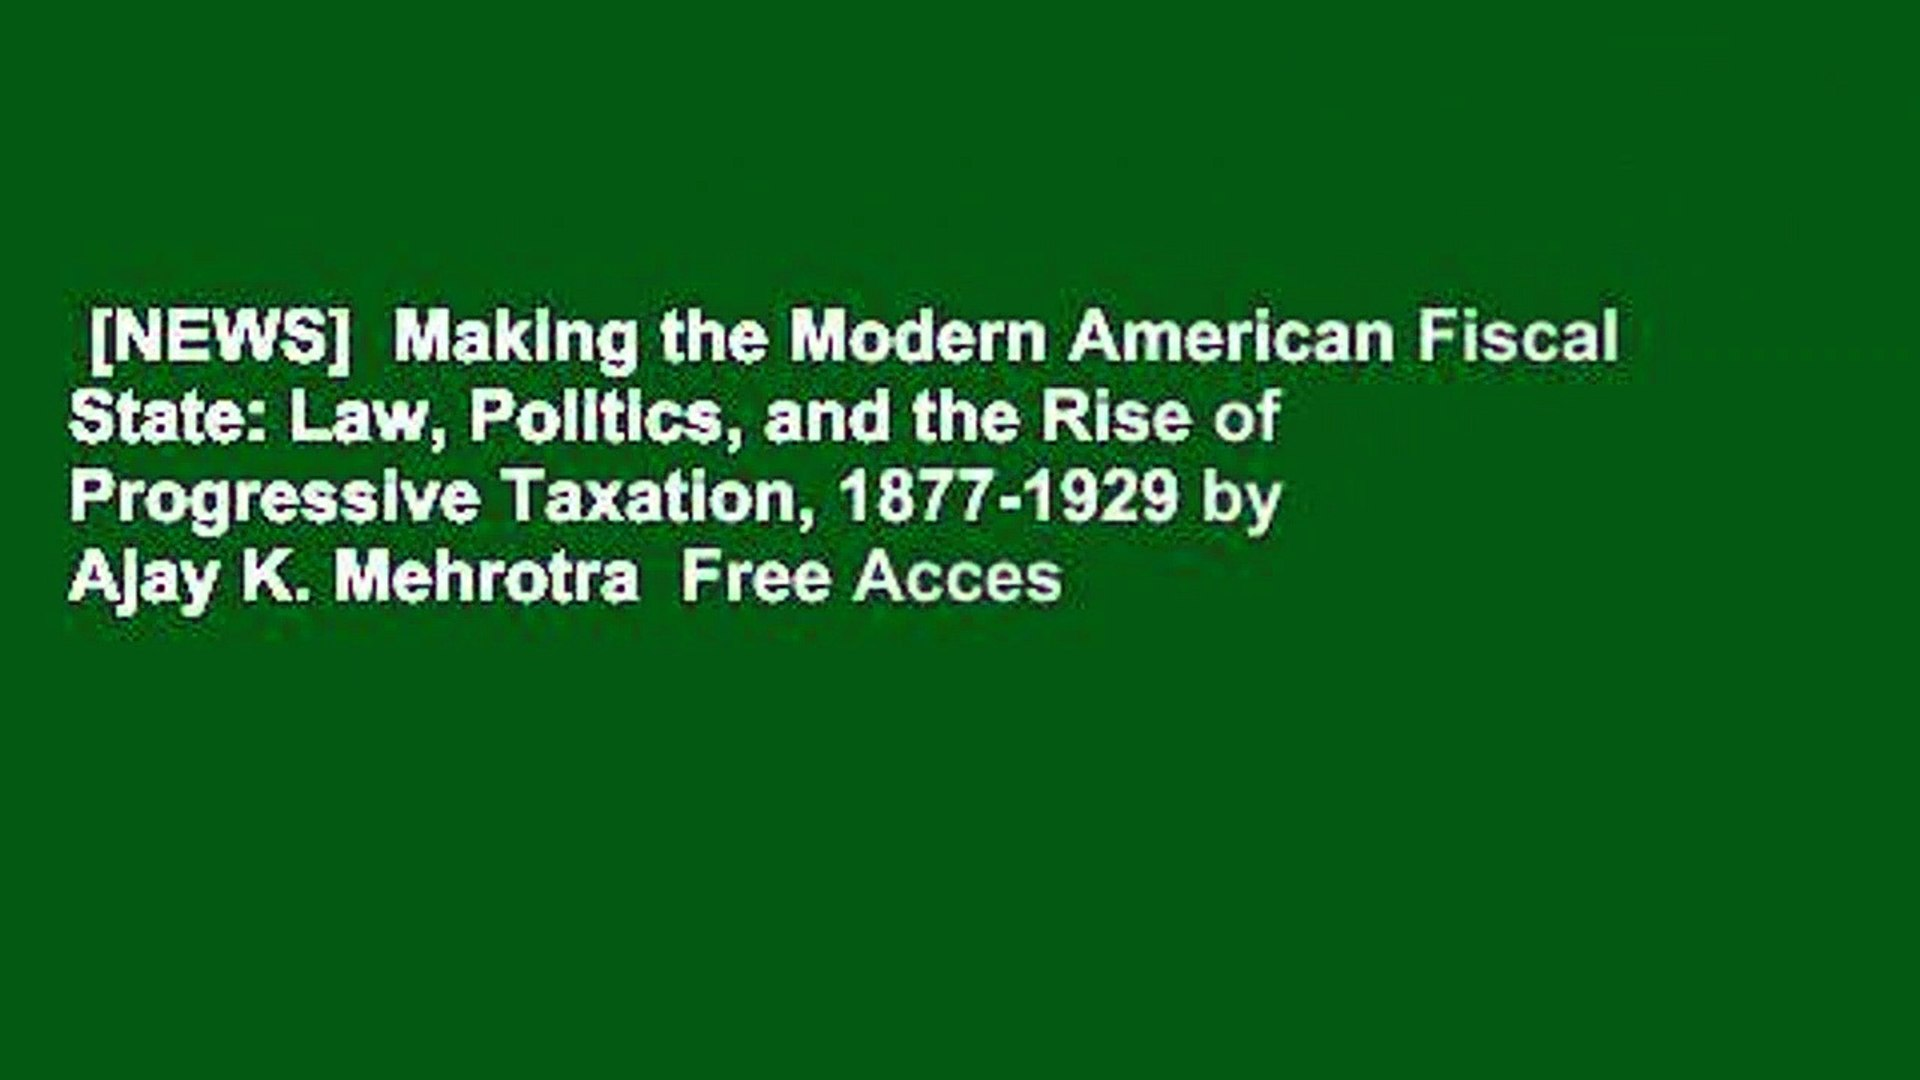 [NEWS]  Making the Modern American Fiscal State: Law, Politics, and the Rise